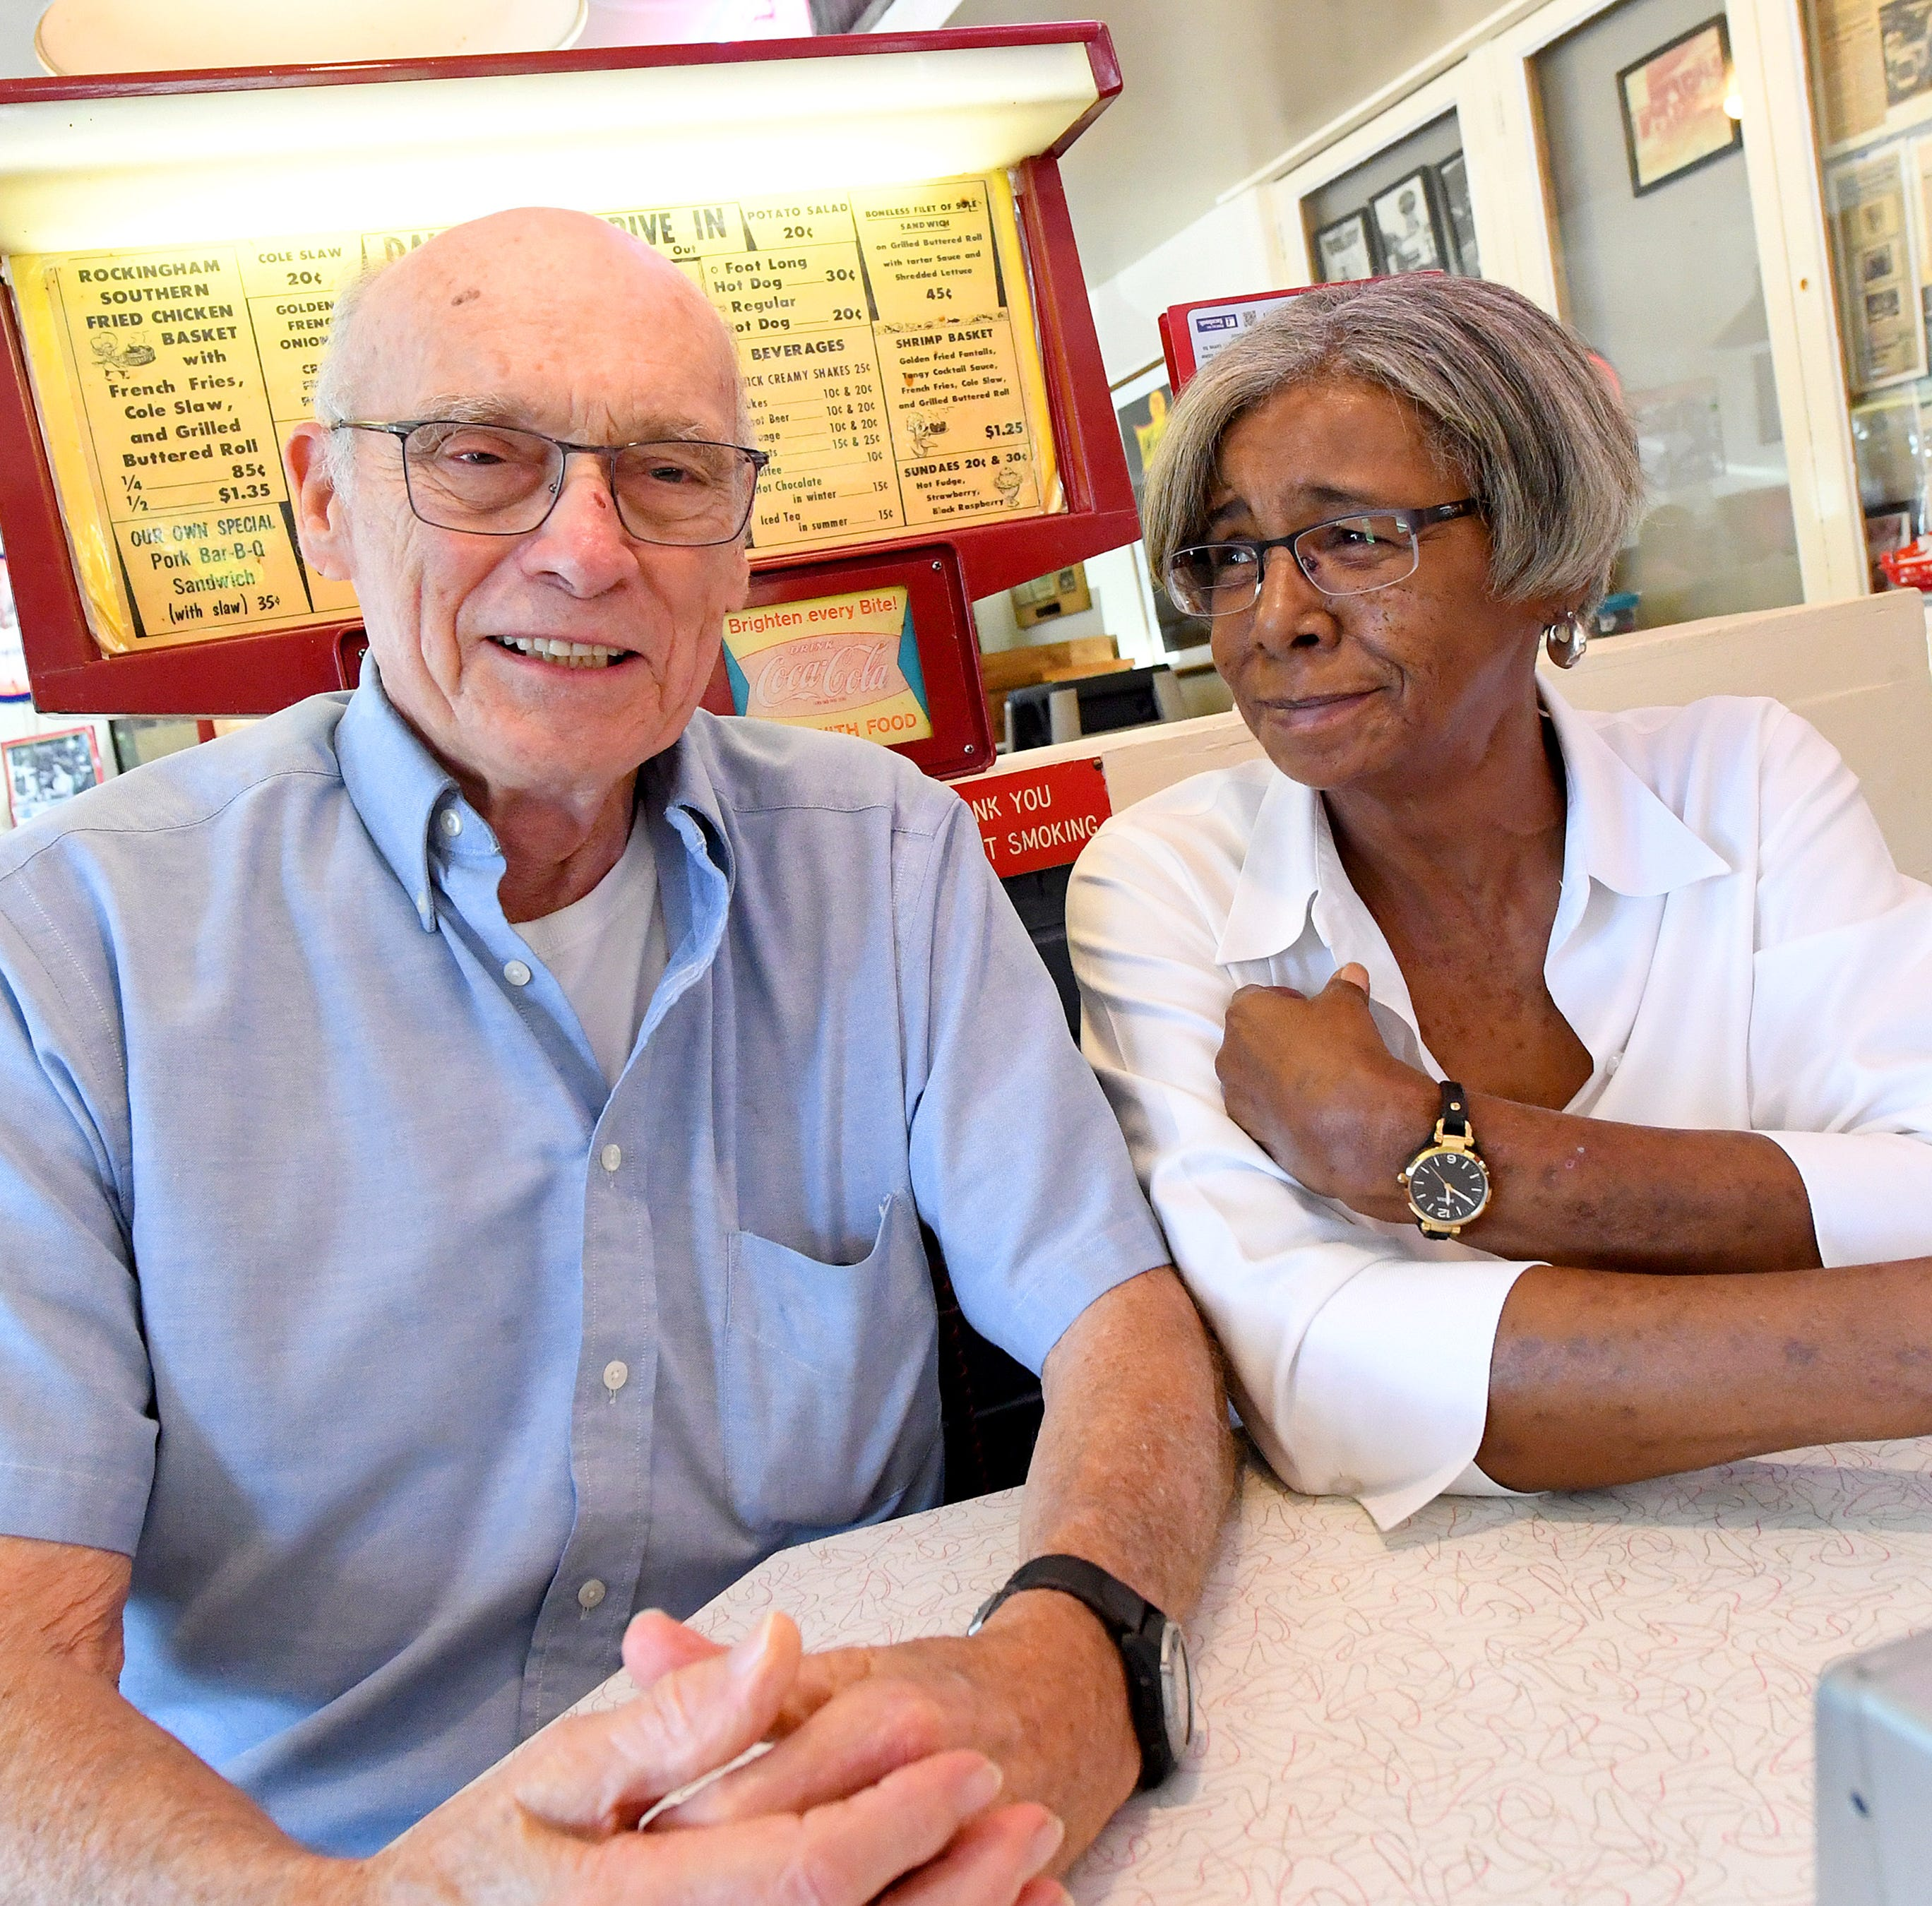 Desegregation began in Staunton at Wright's Dairy-Rite